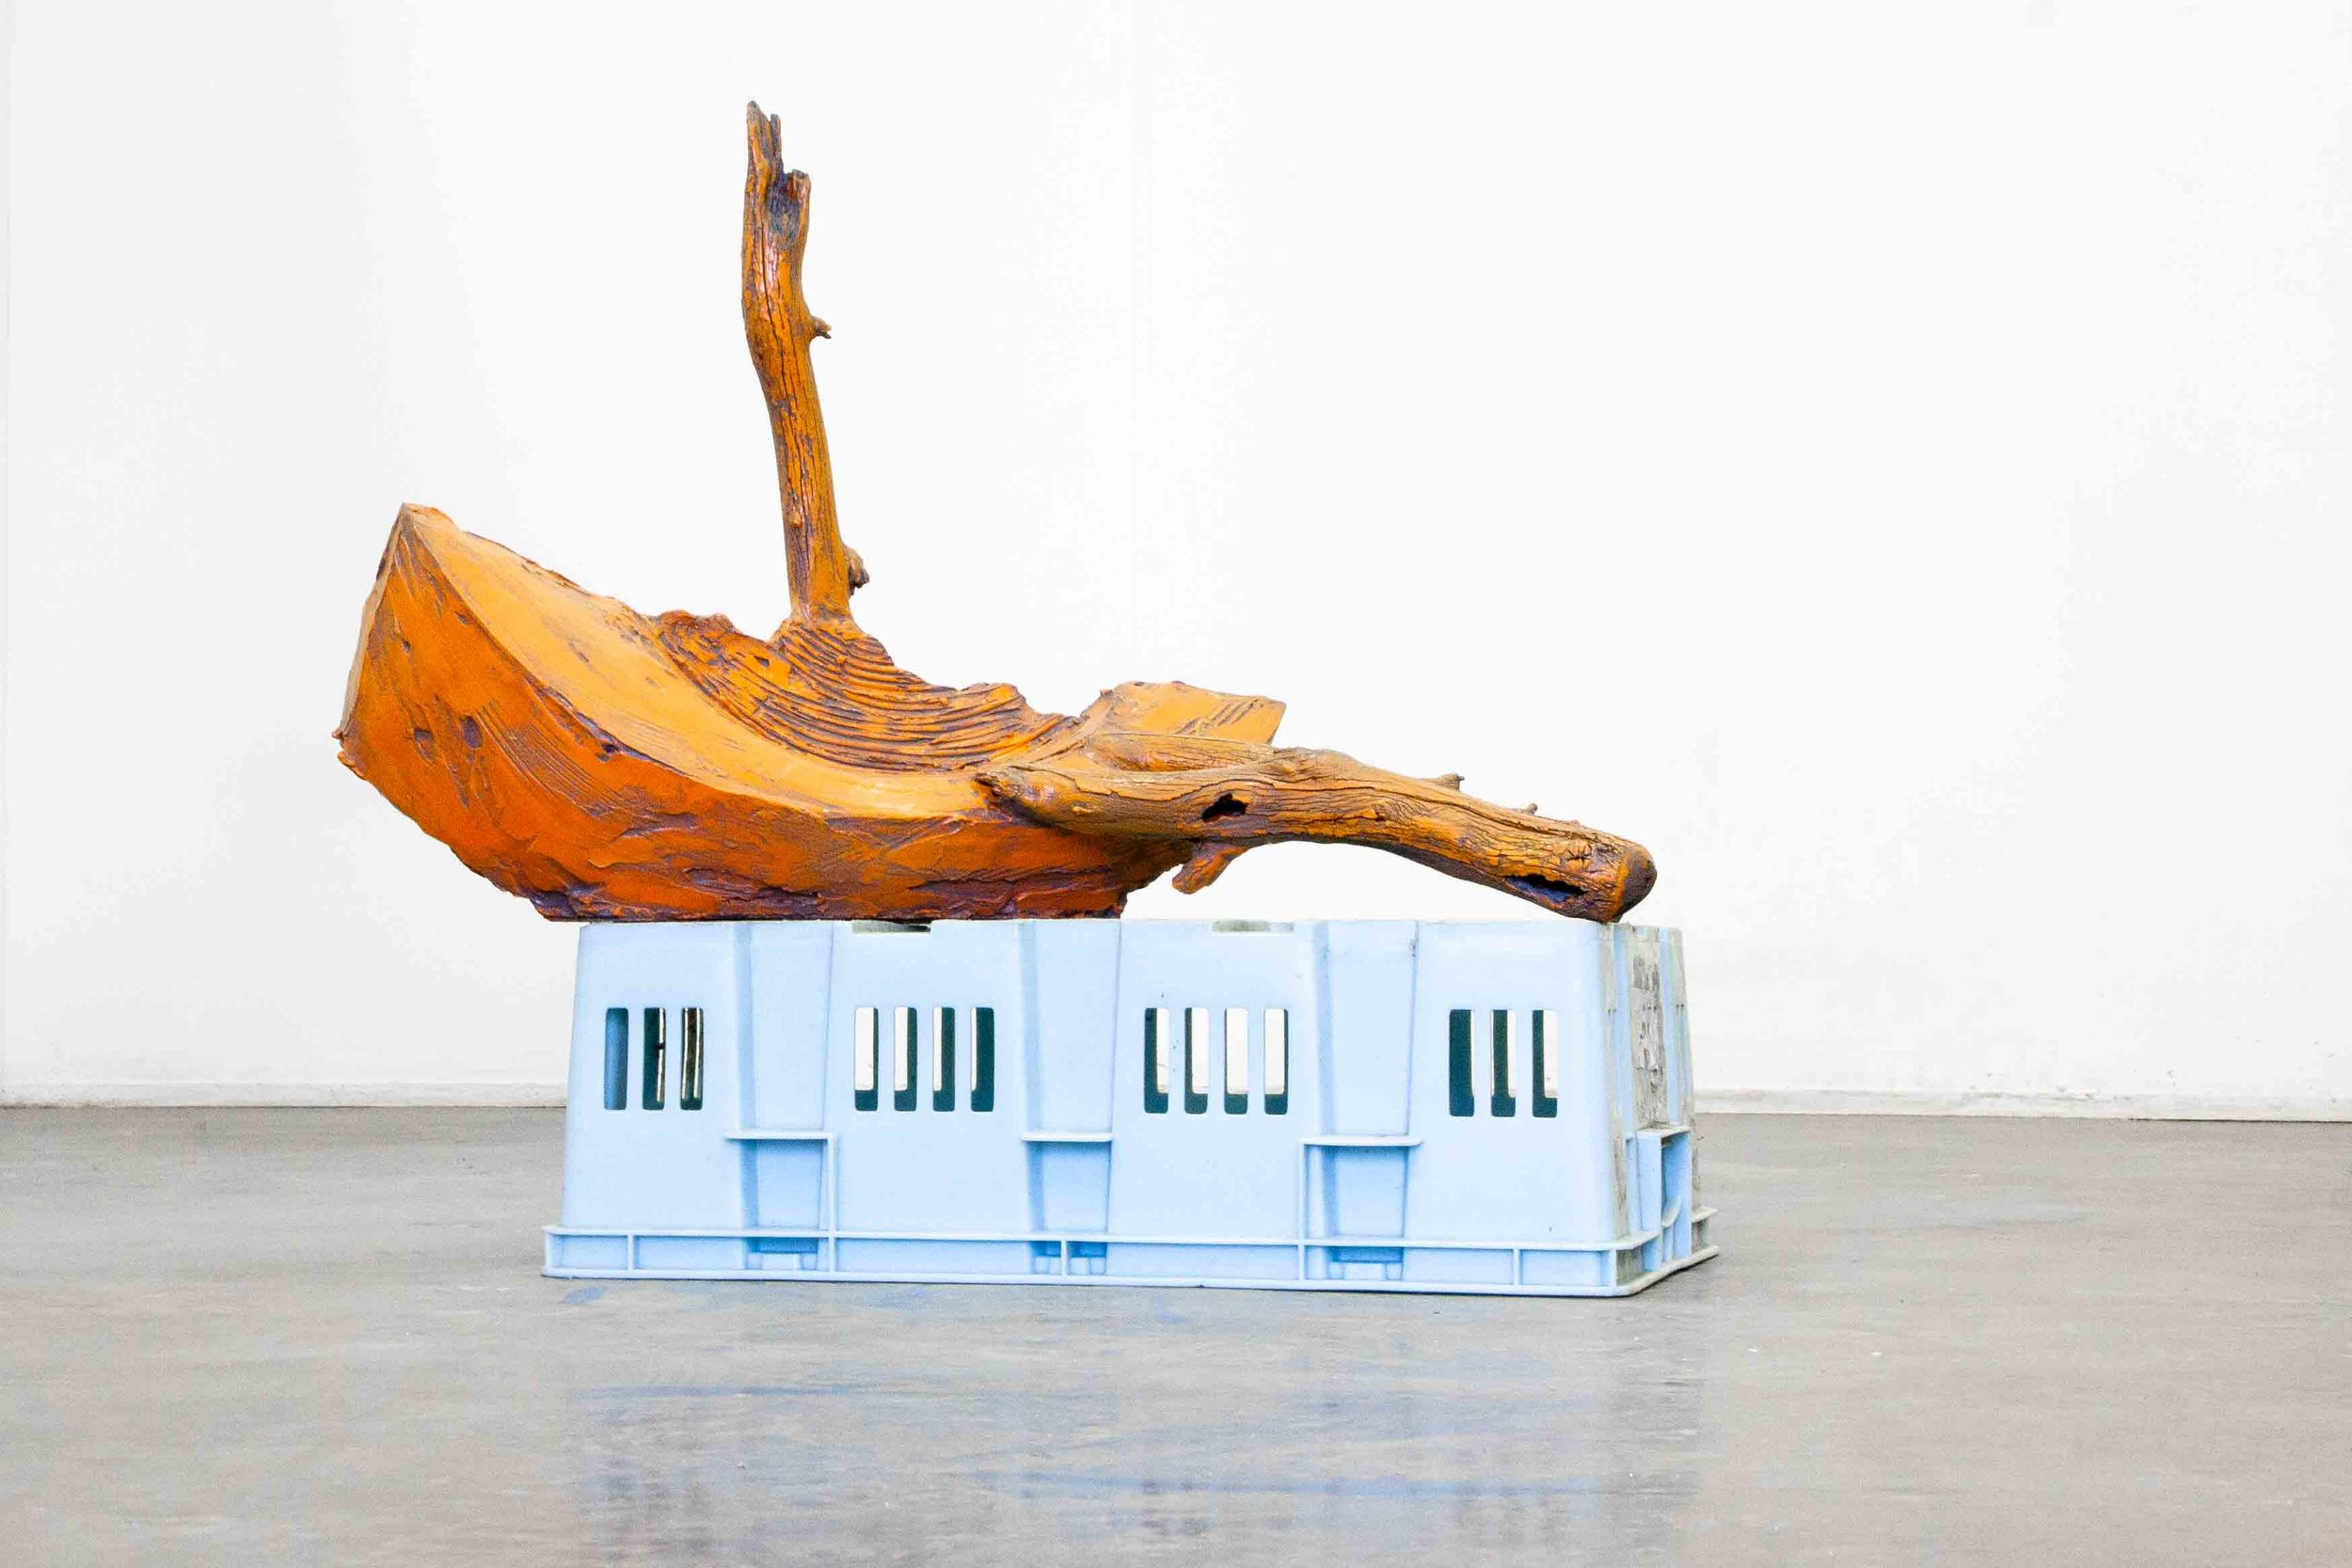 Alex Lyne,  Voyage , 2017, plaster, wood, plastic and automative paint, 64 x 70 x 40 cm